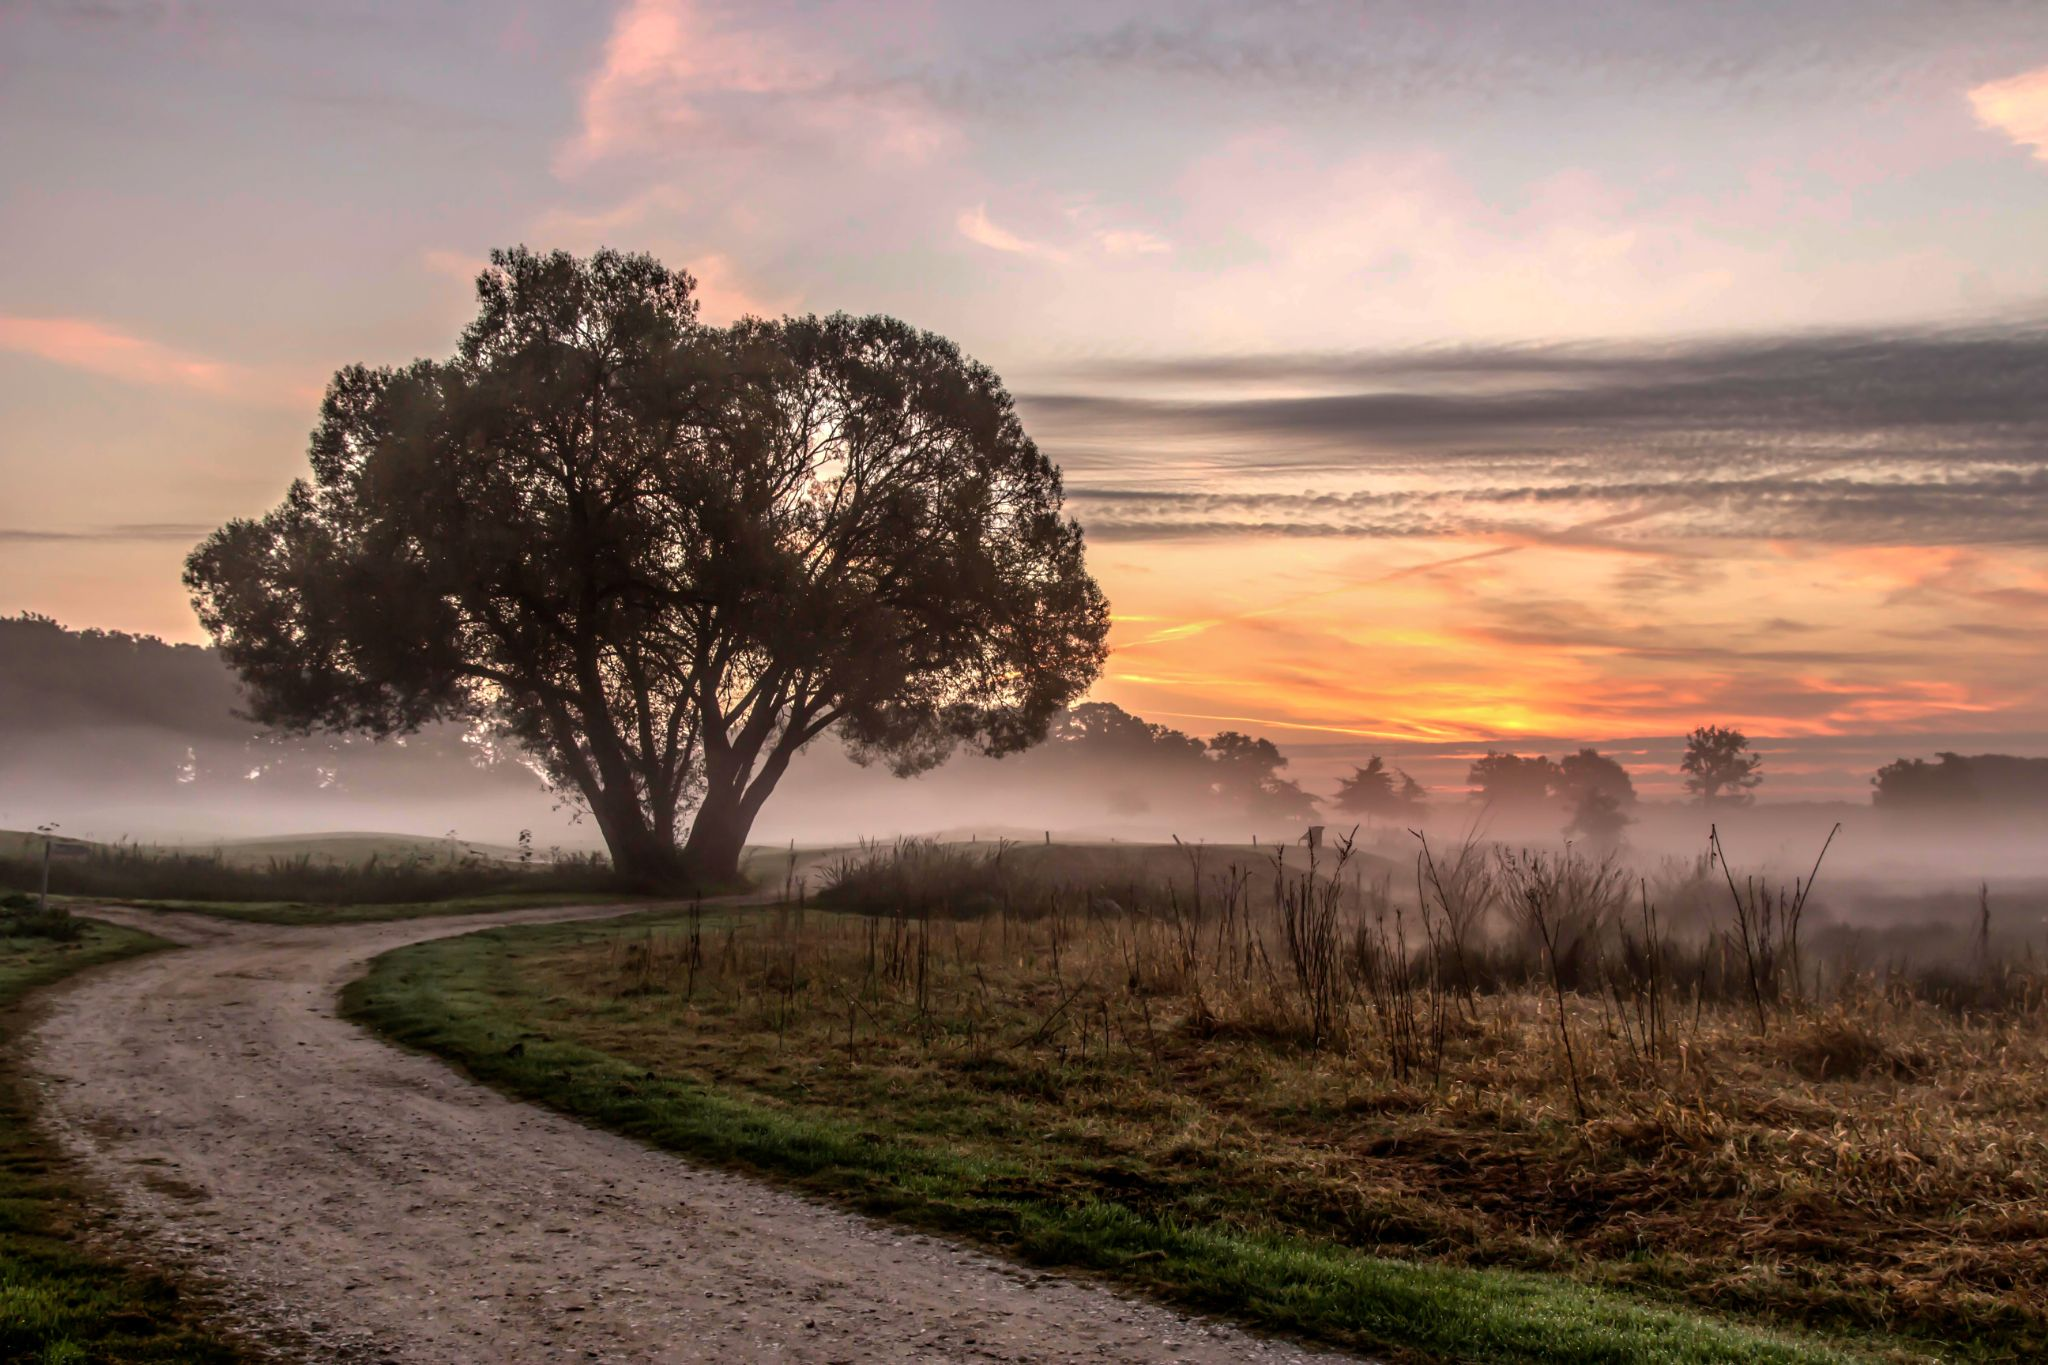 Sunrise by Theo Hermsen